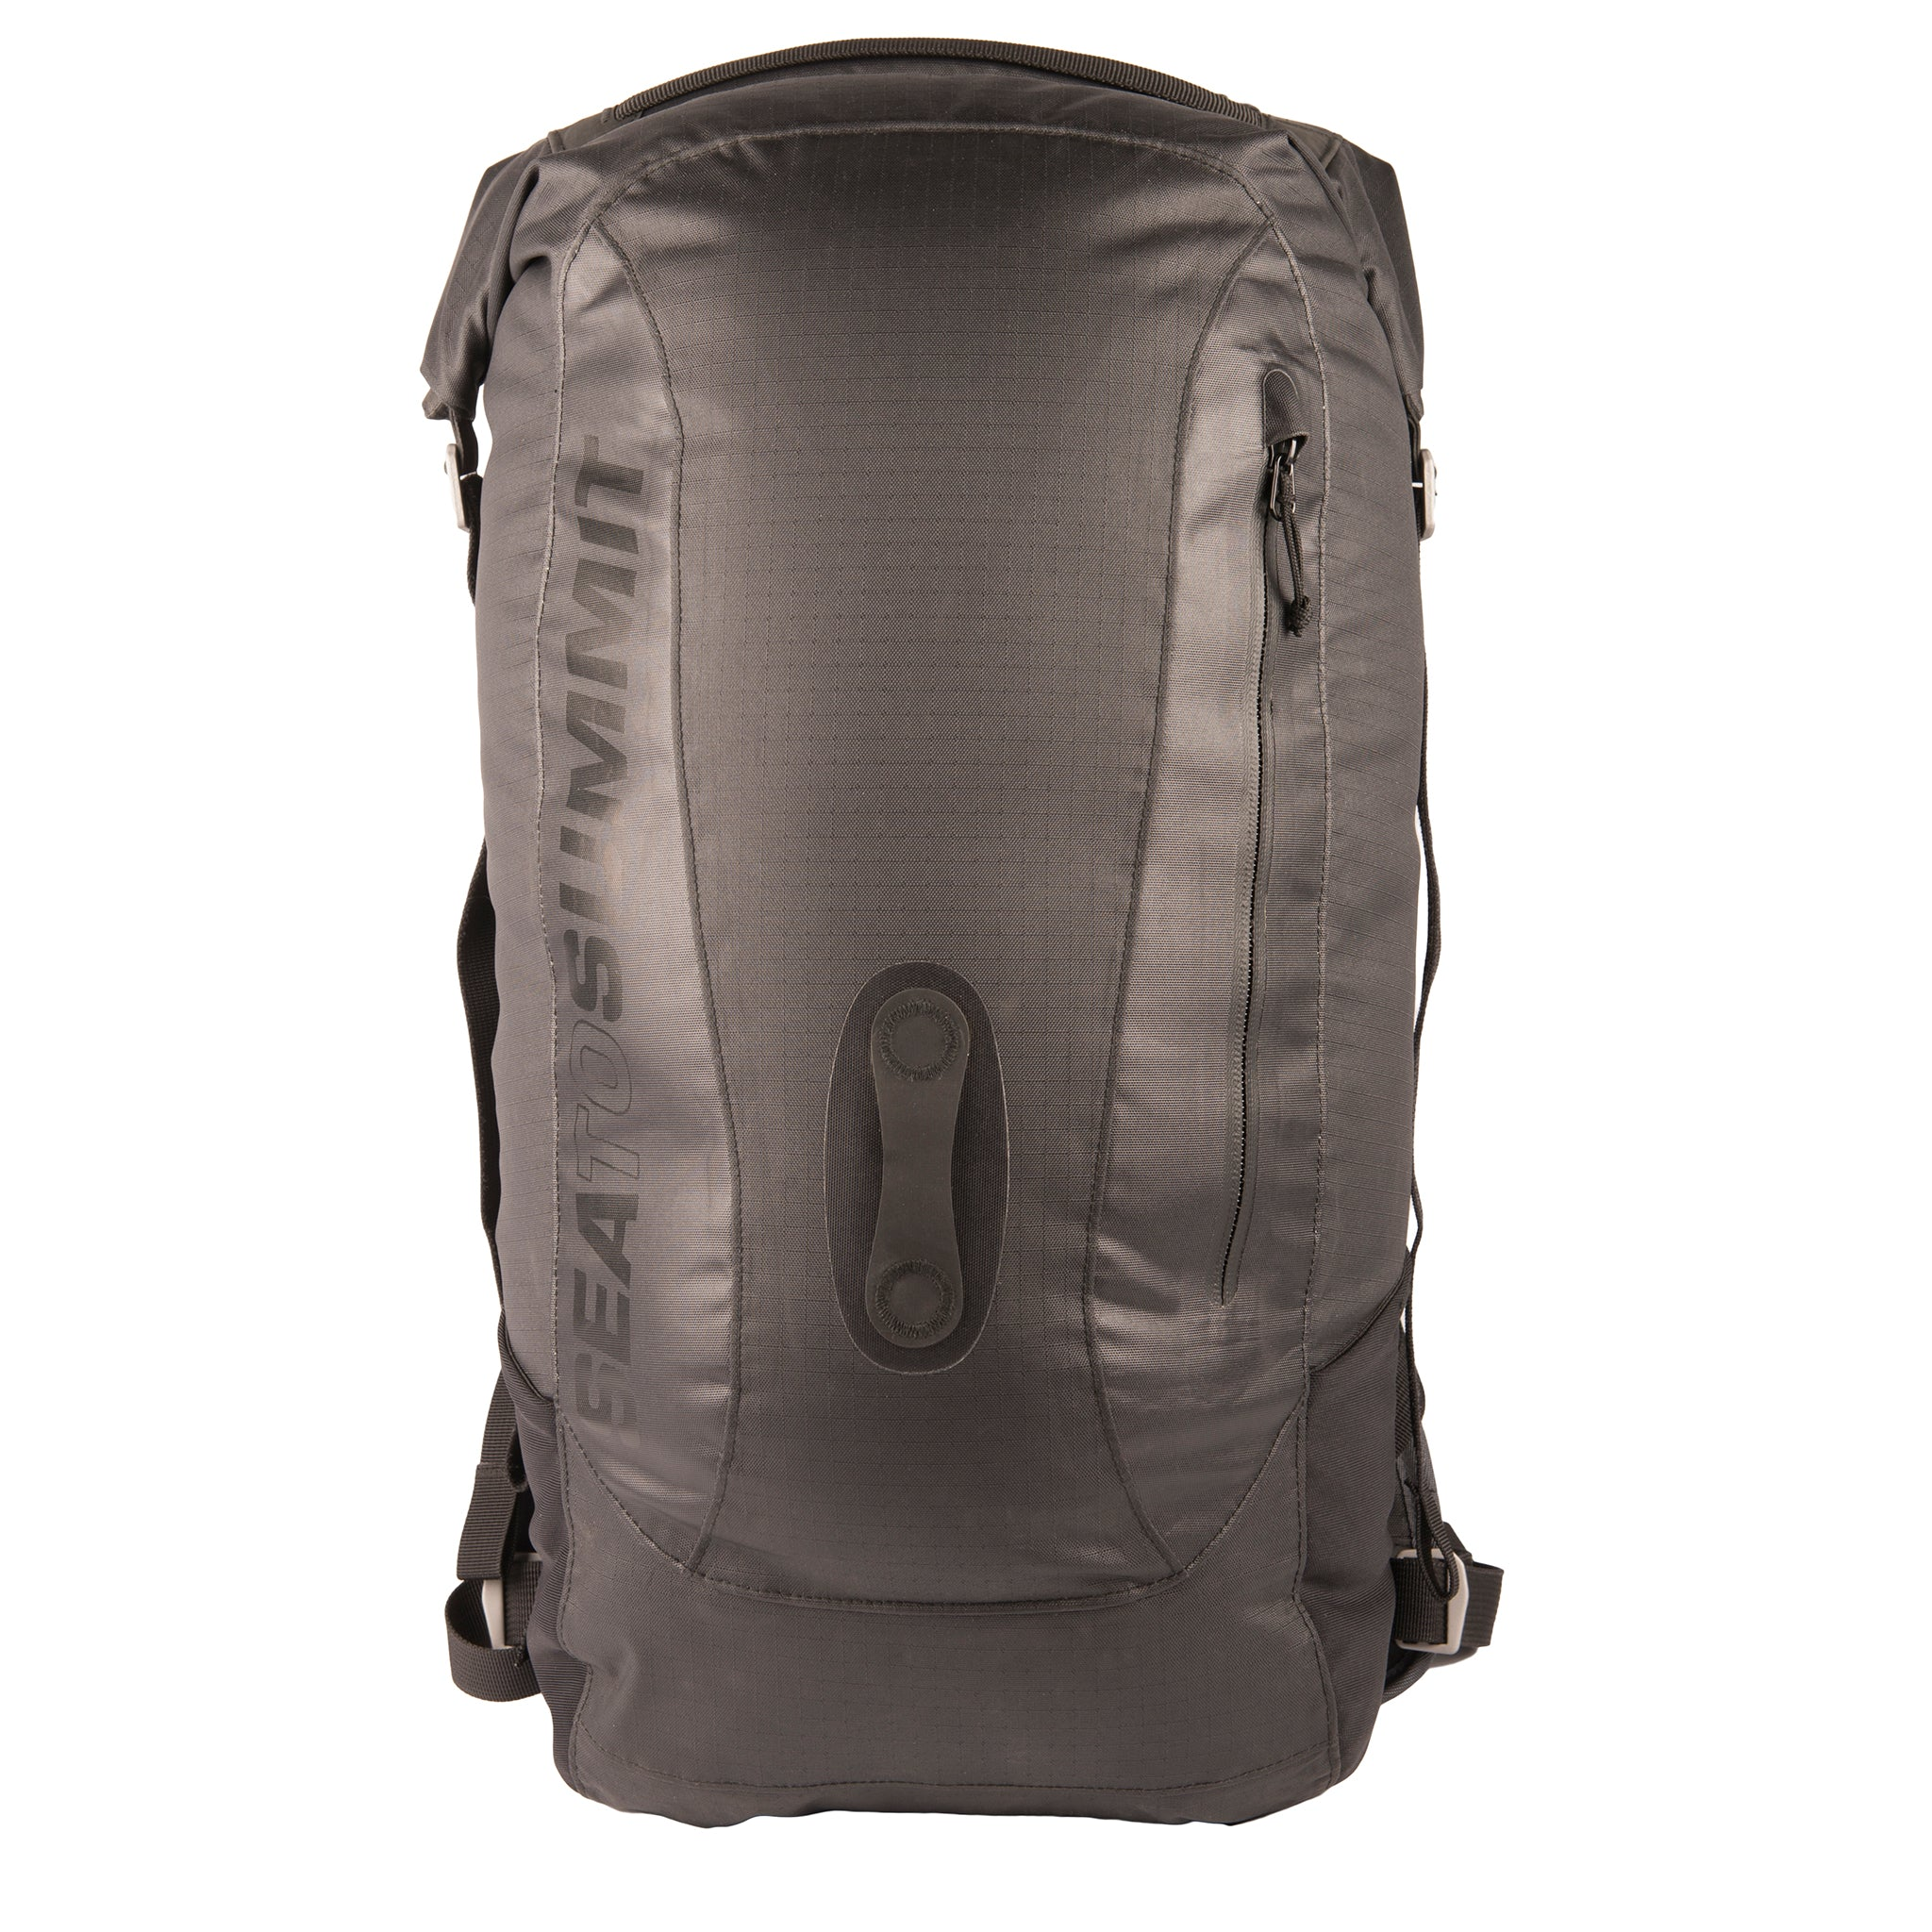 Rapid 26L Dry Pack _ dry bag backpack _ black